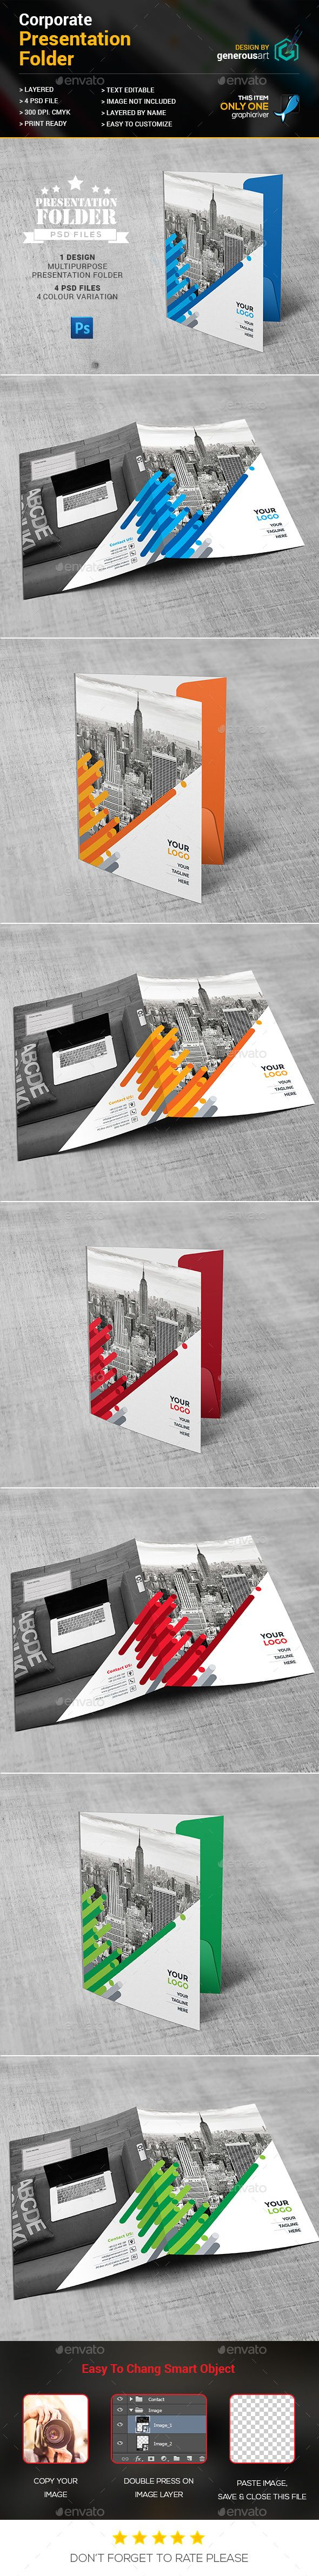 Business Presentation Folder Design Template - Stationery Print Template PSD. Download here: http://graphicriver.net/item/business-presentation-folder/16691229?ref=yinkira